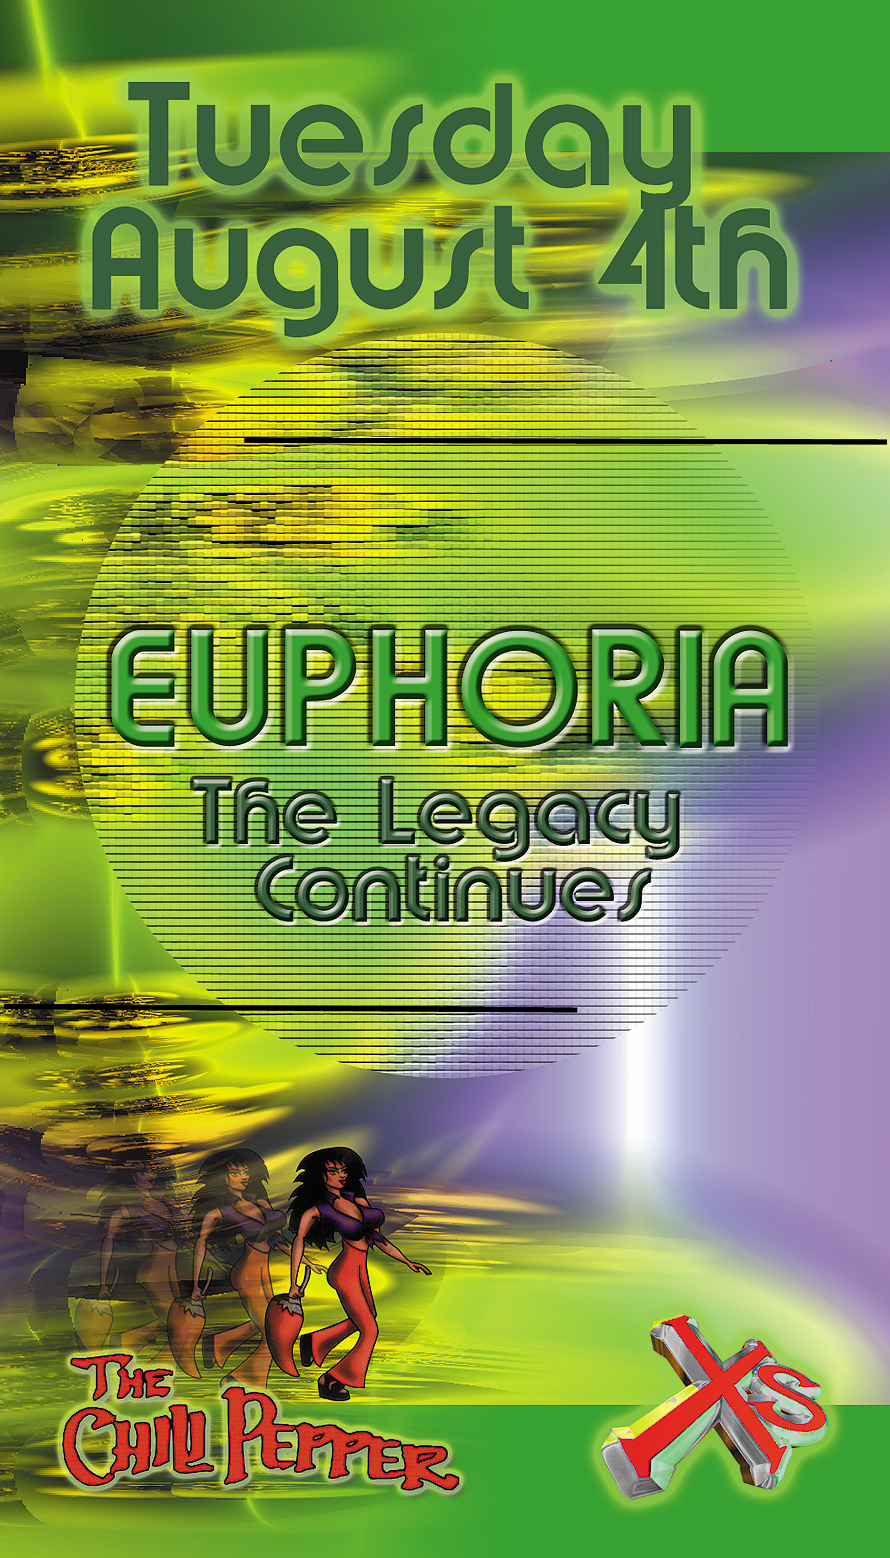 Euphoria The Legacy Continues